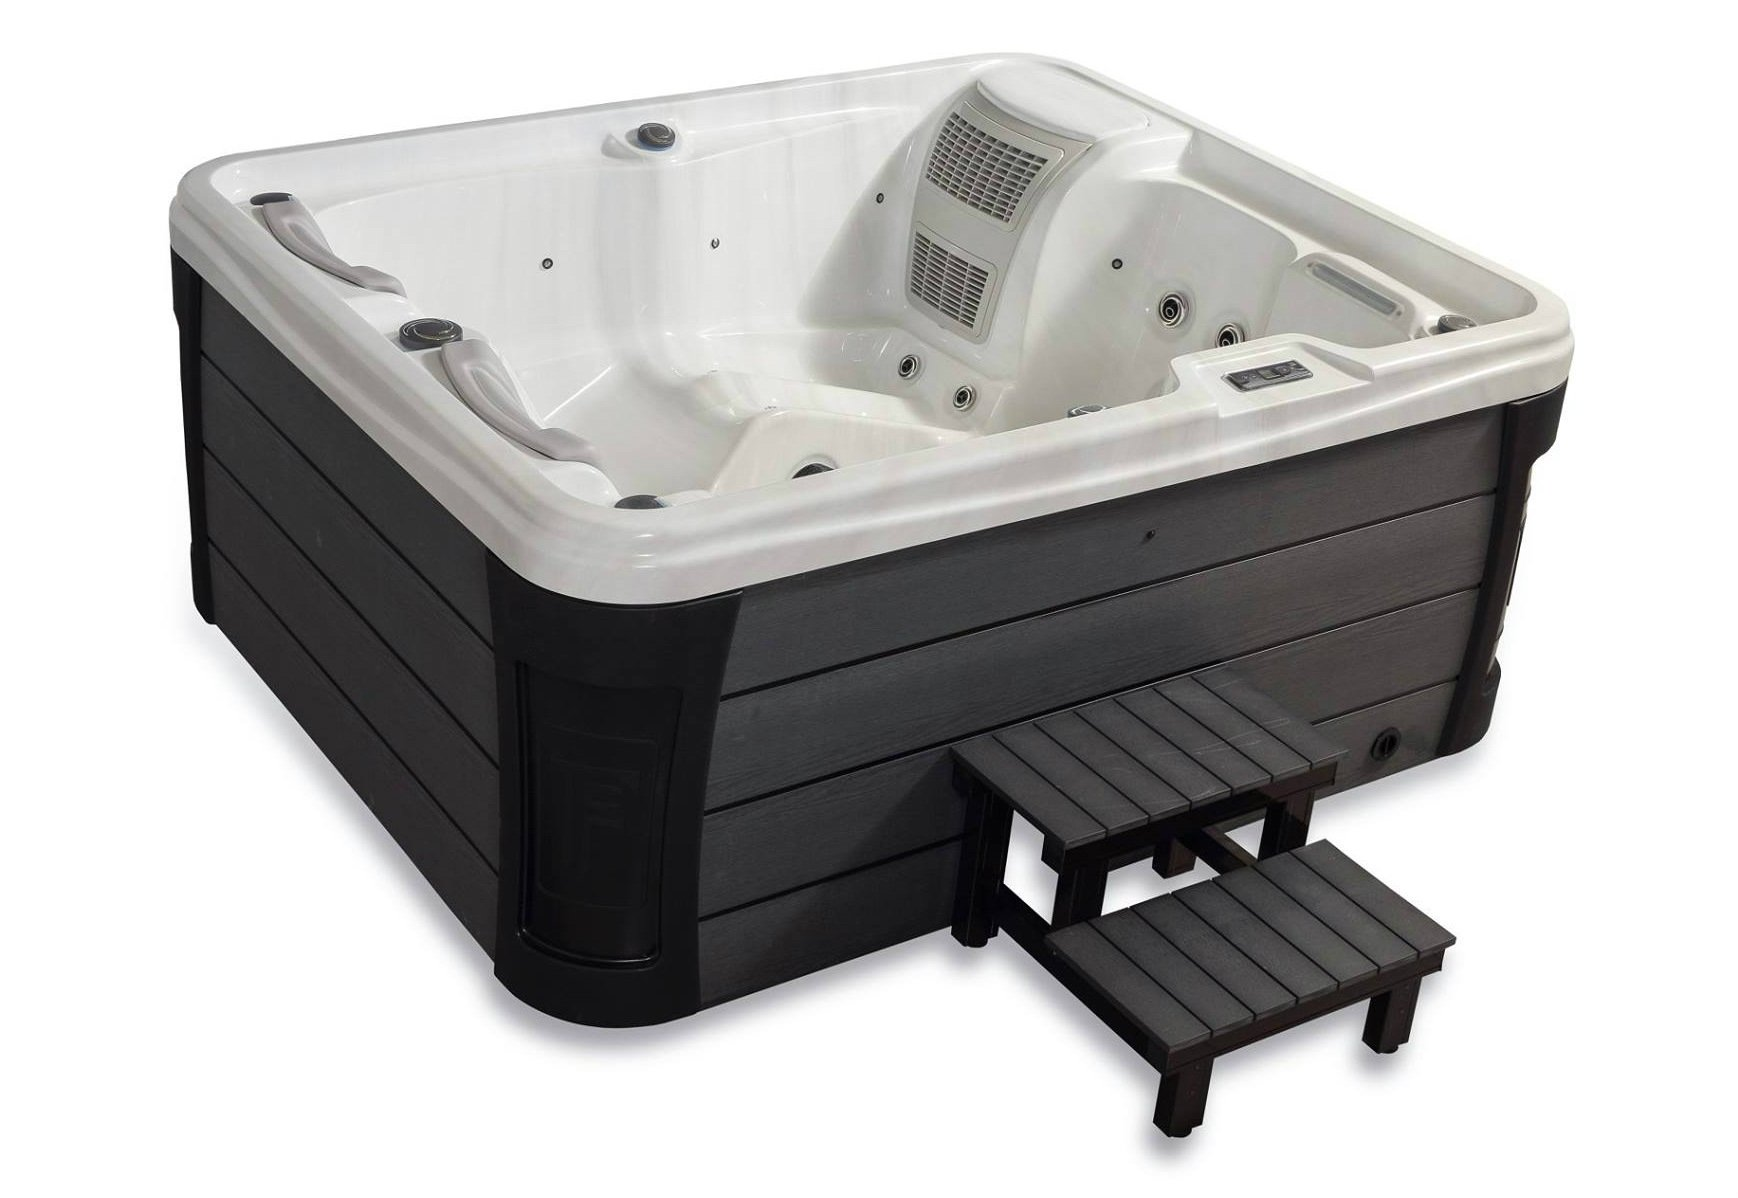 tub made wooden production com polypropylene plastic products hot inside with